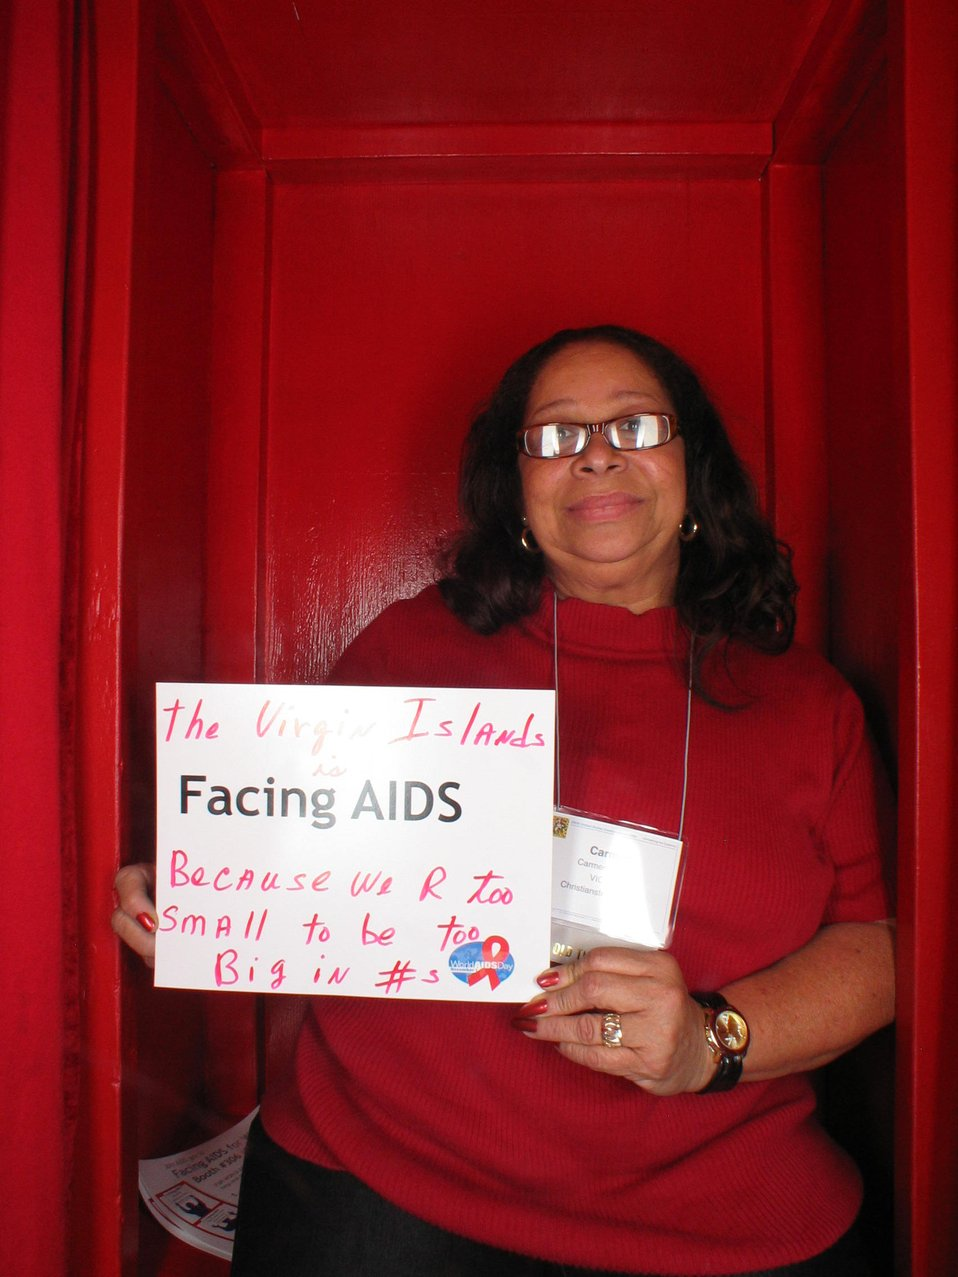 Facing AIDS because we are too small to be this big in #s